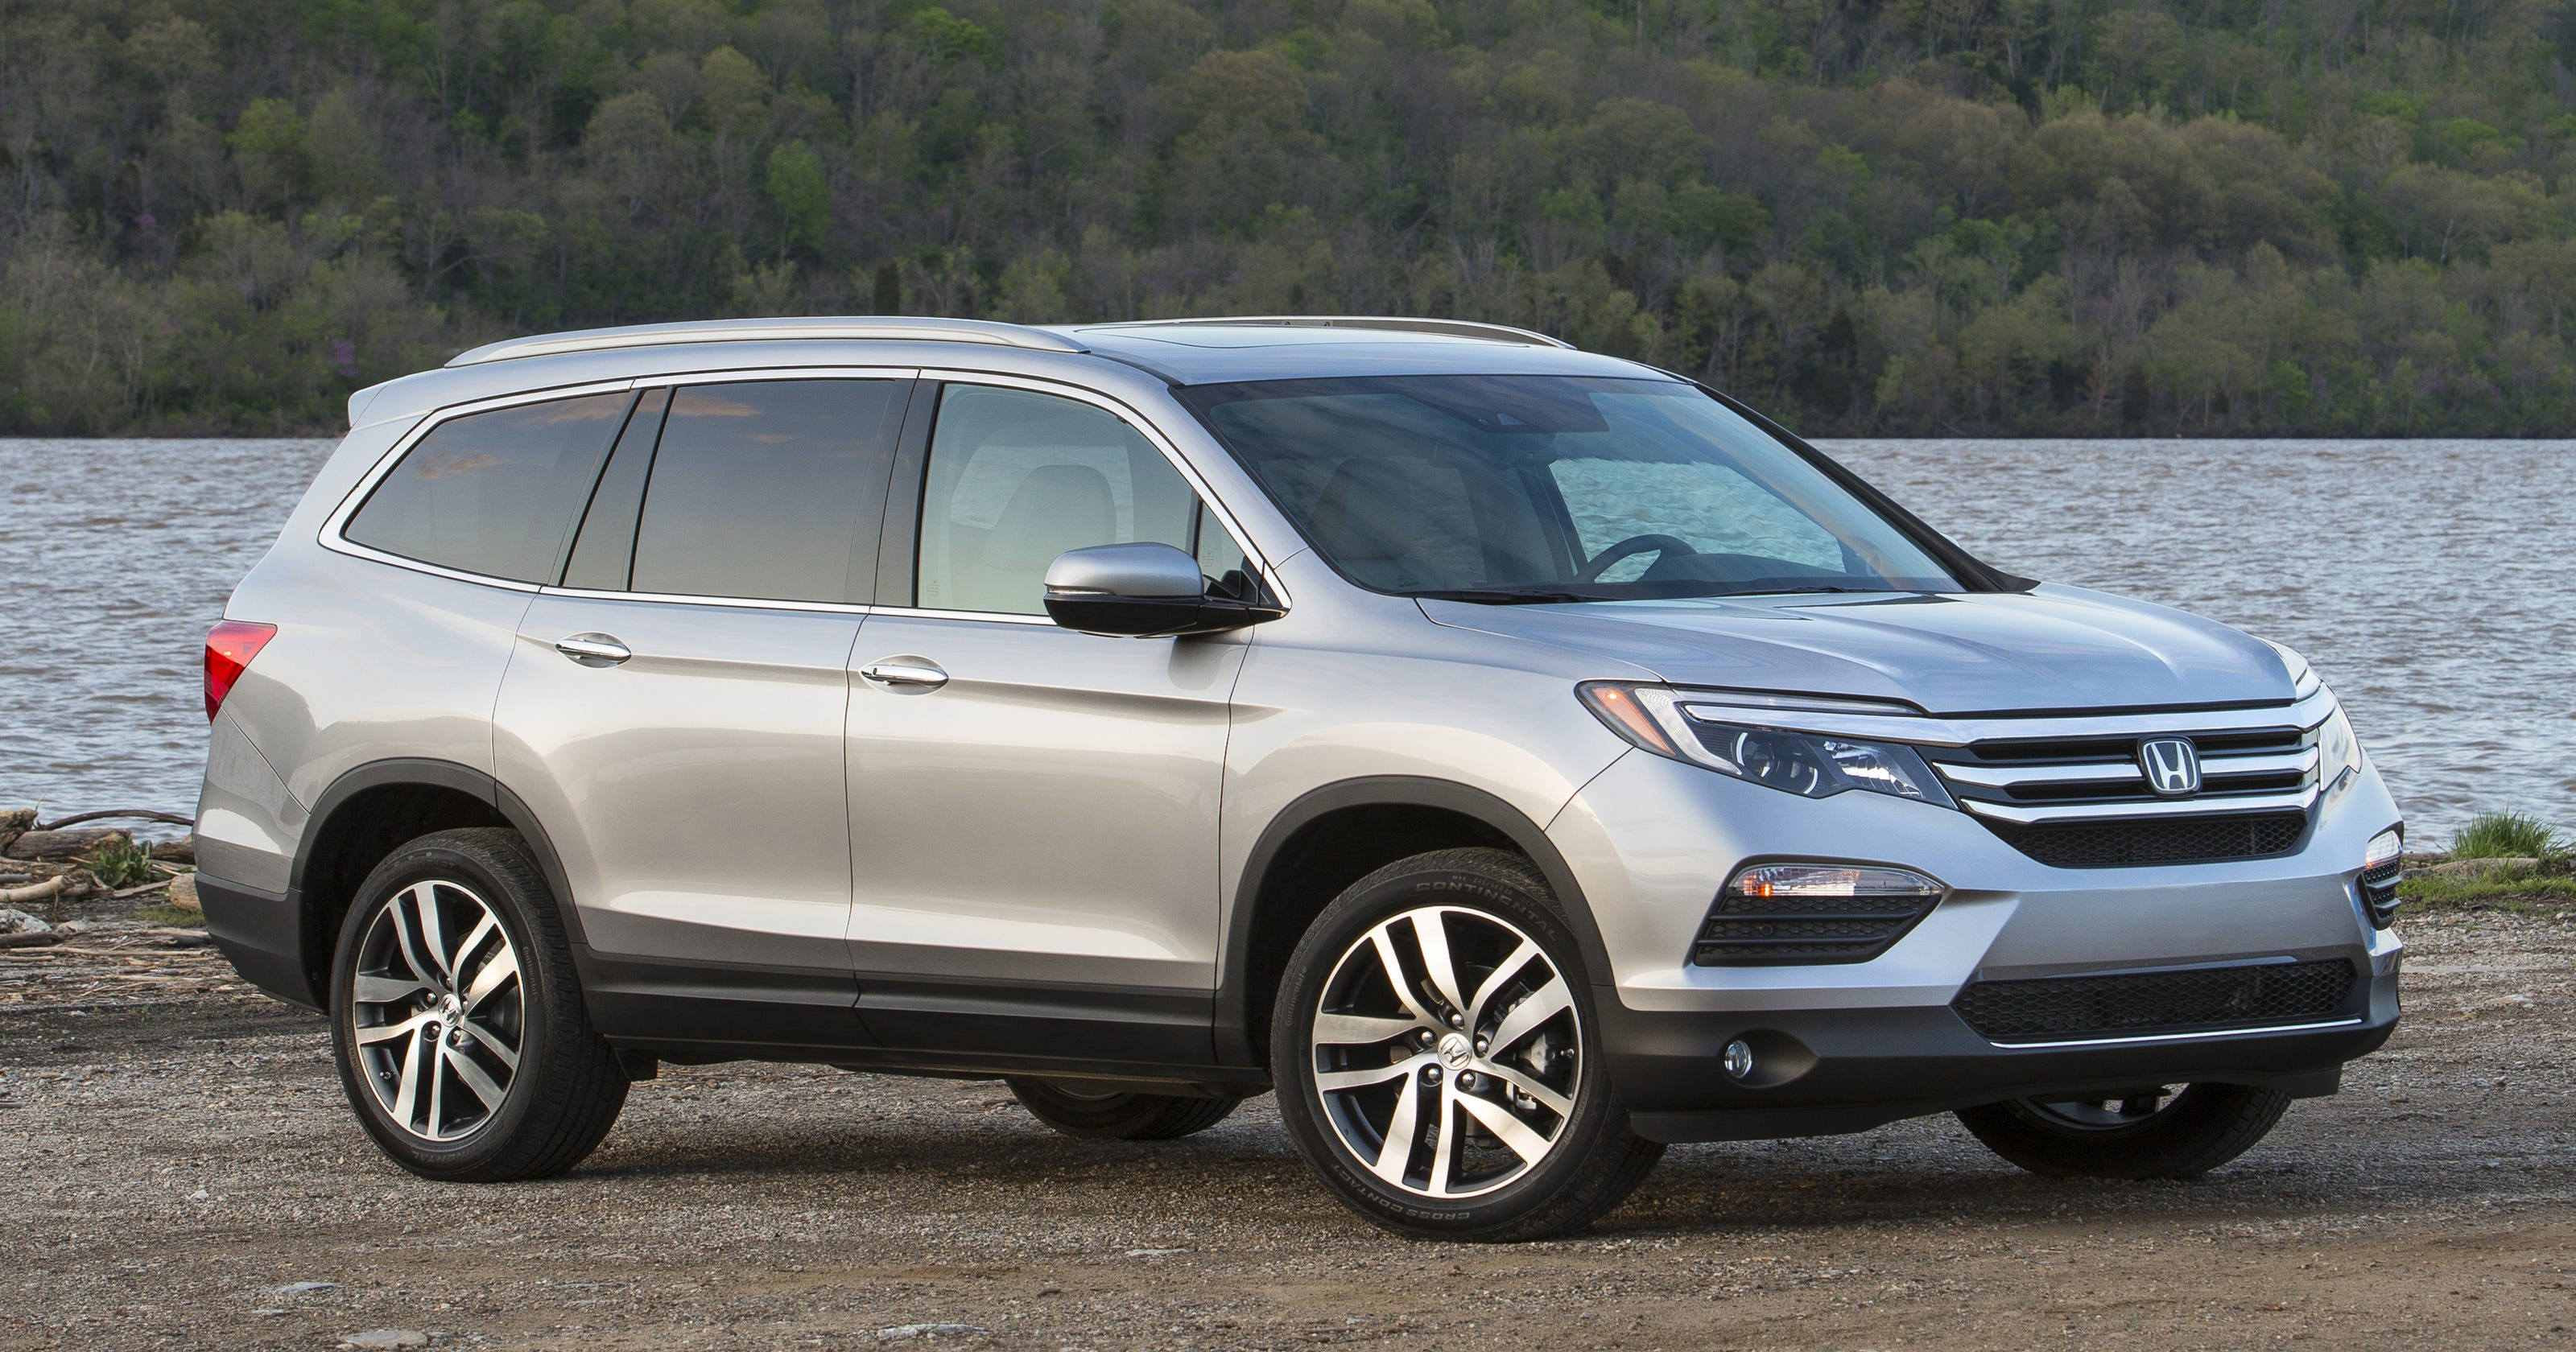 honda pilot offers room  fuel economy